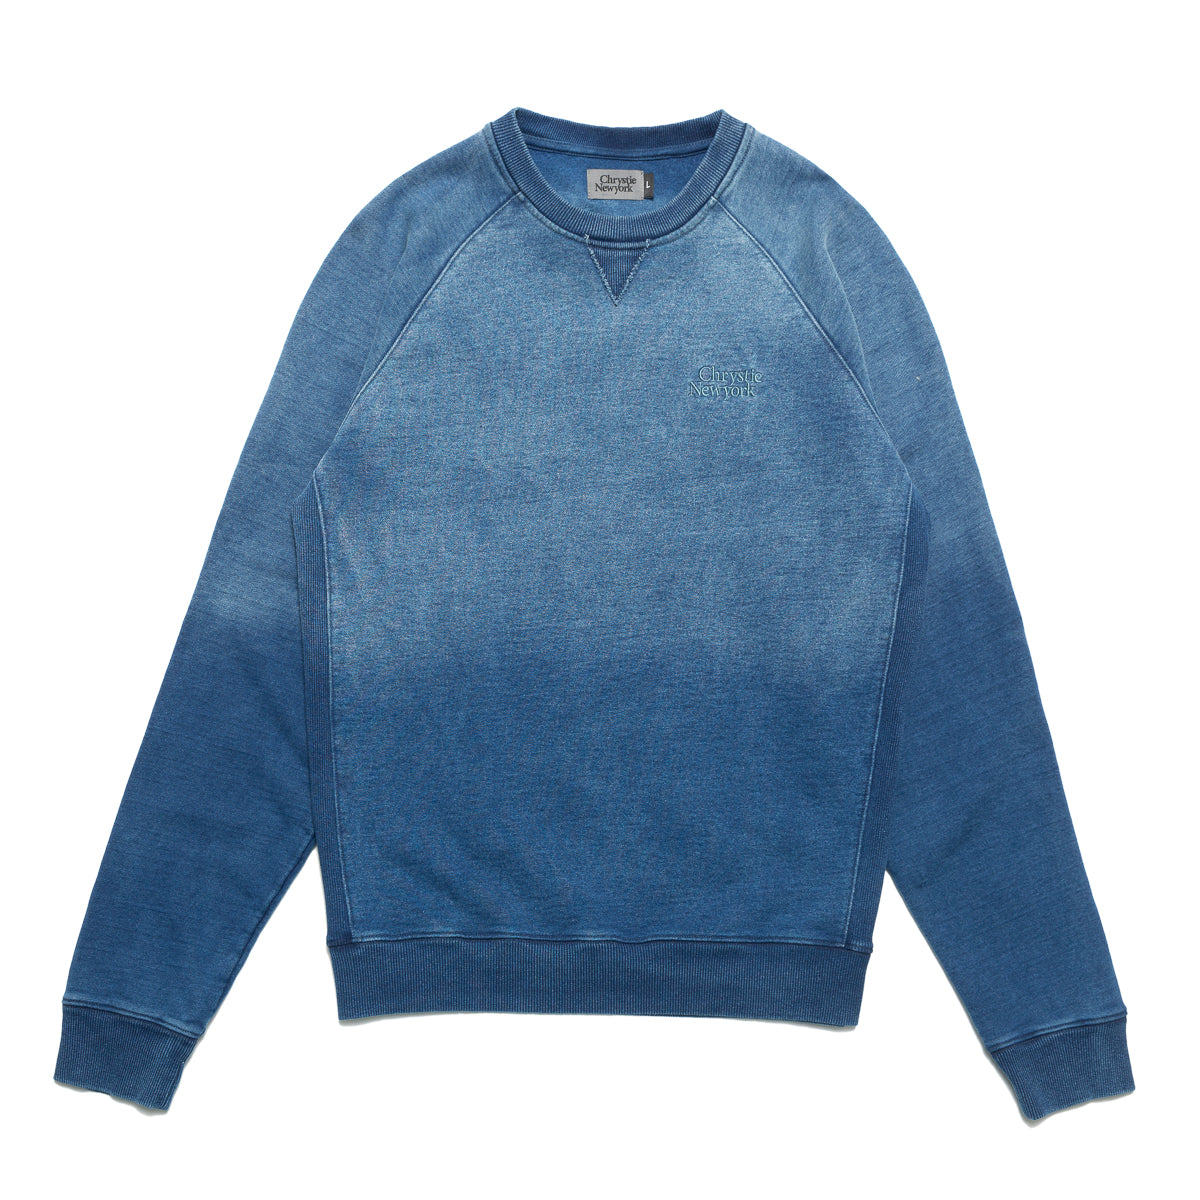 Load image into Gallery viewer, Indigo dye Classic logo crewneck sweater